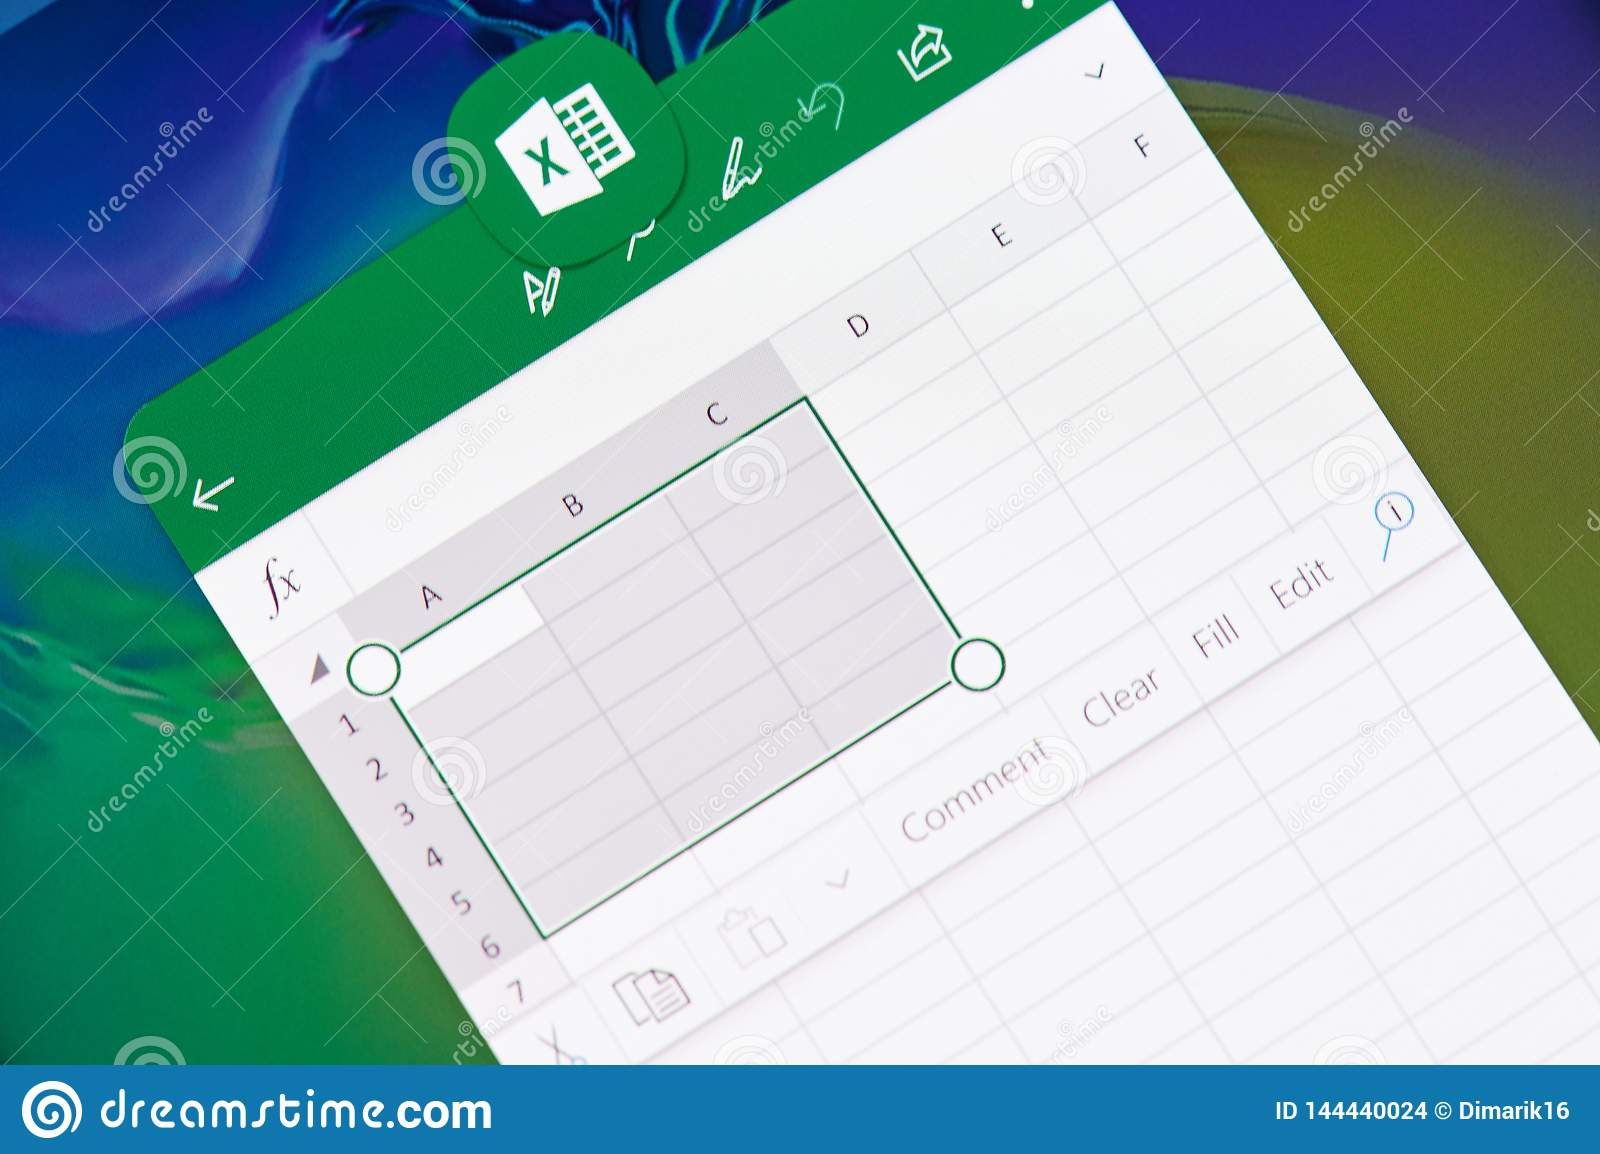 Creating Document In Microsoft Office Excel Application